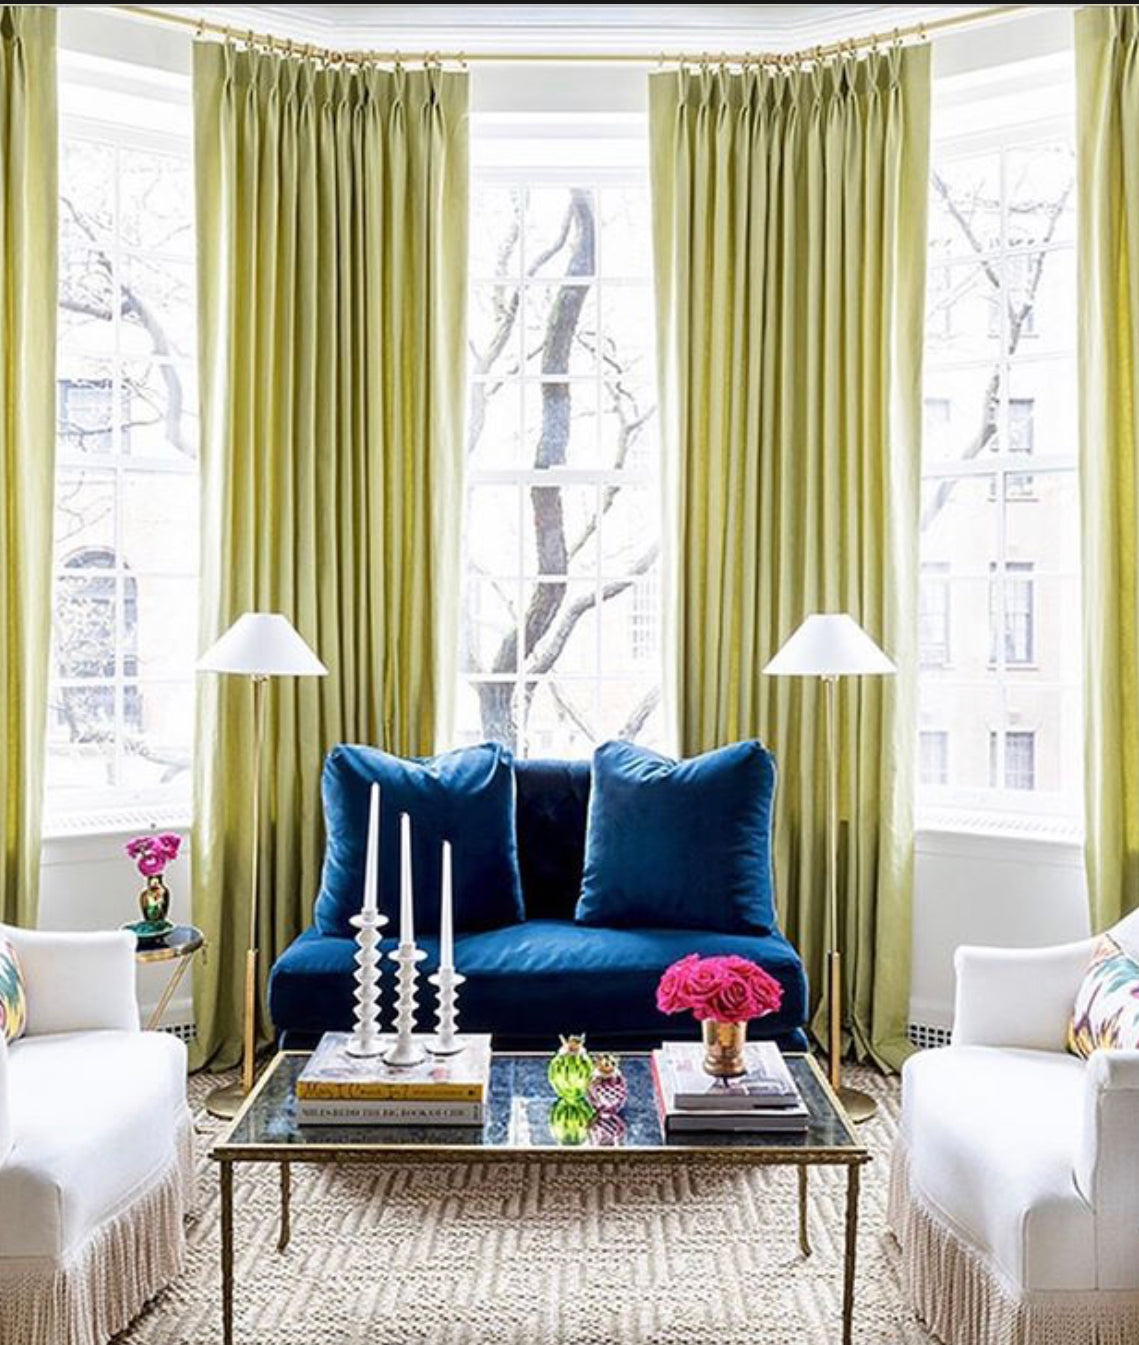 "In Paloma's words : ""Green is Good! I love just about every hue of green. This spring, I found myself craving chartreuse in particular and knew that the bold hue would be ideal for adding a little drama to my room at the Kips Bay show house. While the color is energizing, I also find it to be soothing and elegant, which I find so interesting. Isn't the power or color incredible?"" Drapes by @theshadestore"